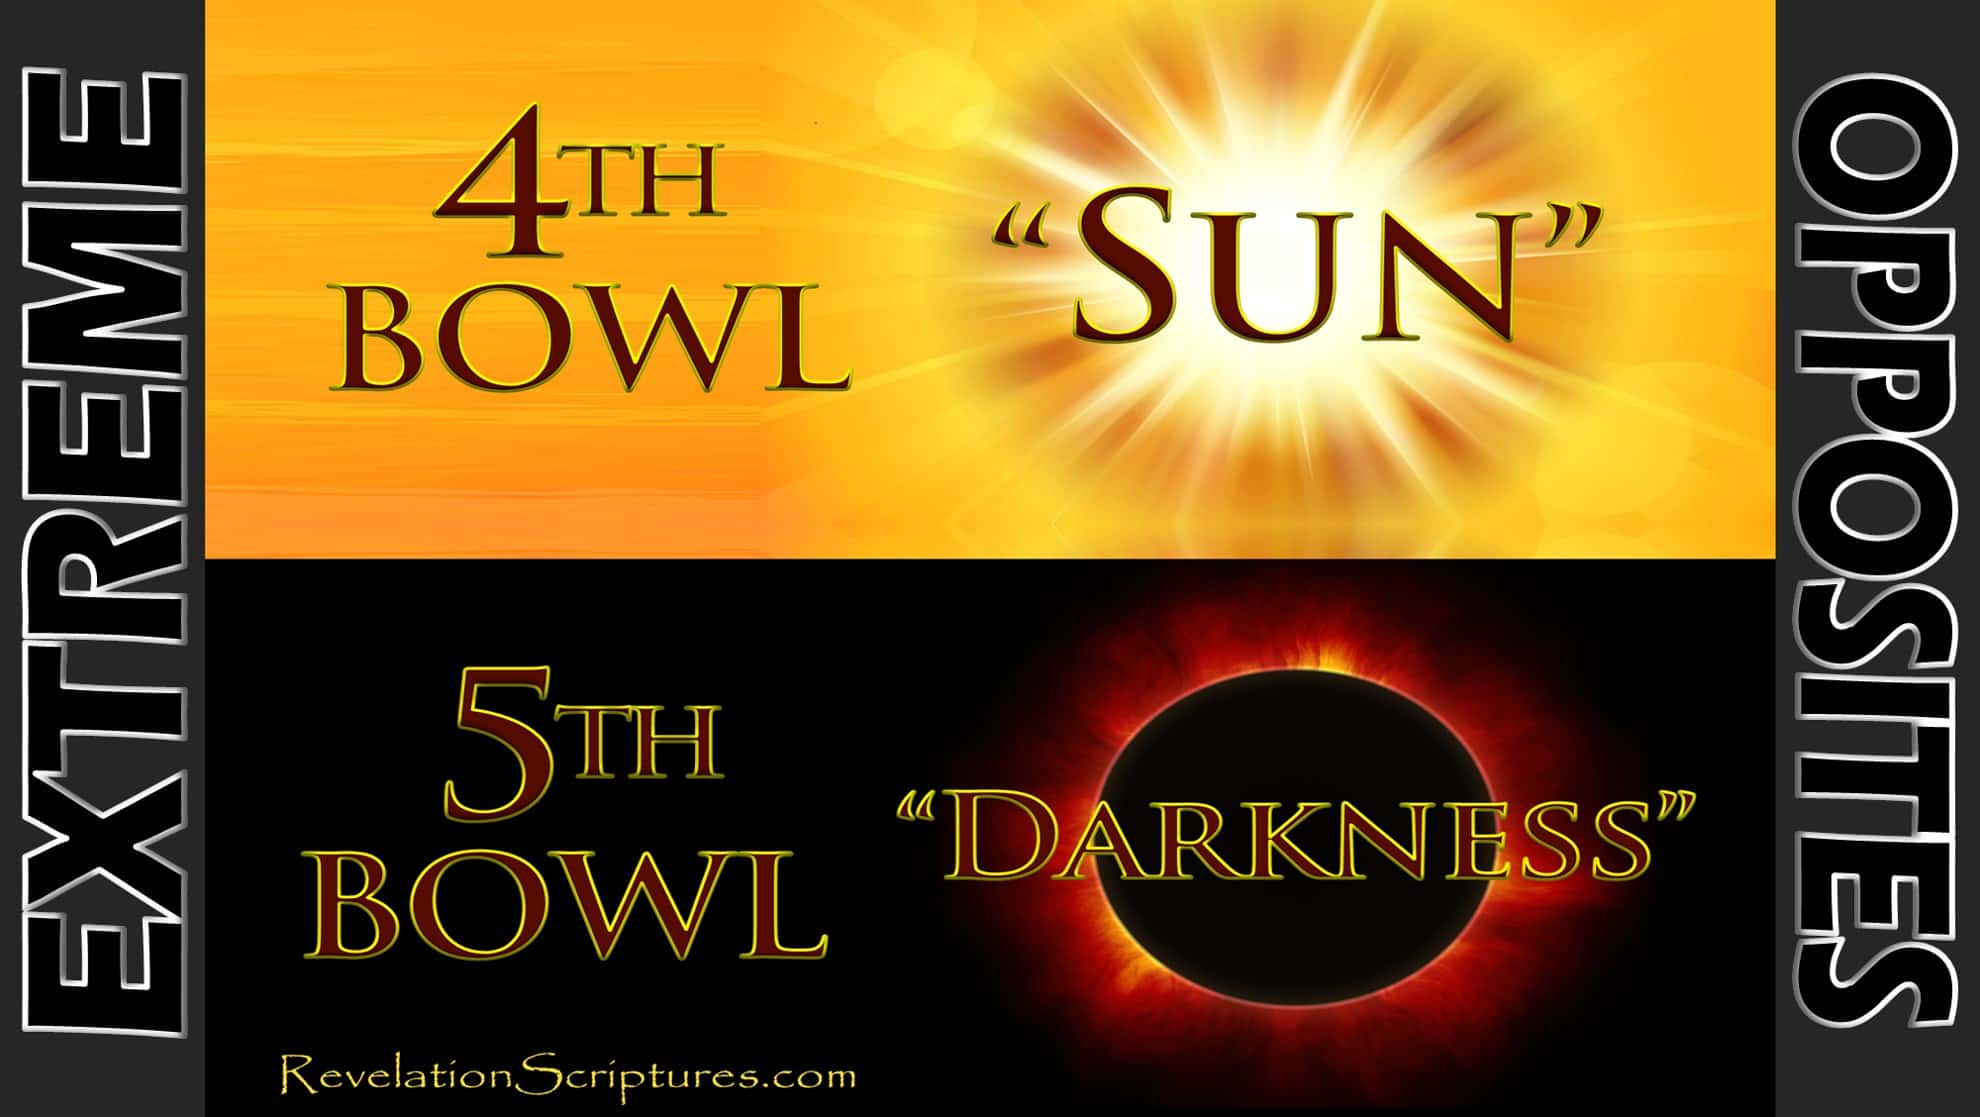 Extreme Opposites,light,darkness,light and darkness,Bible,Sun and darkness,Fifth Bowl, Fifth Vial of Wrath,5th Vail,5th Bowl,Throne of Beast,Kingdom,Plunged,Darkness,Gnaw Tongues,Painful,Sores,Seven Bowls of Wrath,Book of Revelation,Revelation Chapter 16,Apocalypse,4th Bowl of Wrath,4th Vial of Wrath,4th Bowl,Fourth Bowl,4th Vile,Fourth Vile,Sun,Sol,Scorch,Scorch men,scorch earth,scorch fire,scorch people,scorch everyone,Fire,Heat,Intense Heat,hot,Global Warming,climate change,earth burning,earth on fire,earth burning,people burning,Judgment,Plagues,10 plagues of Egypt,7 Angles,7 last Plagues,7 Final Plagues,Curses,7 Golden Bowls,Day of Wrath,Day of Vengeance,Anger,7 Vials of Wrath,7 Bowls of Wrath,Book of Revelation,Revelation 15,Revelation 16,Revelation Chapter 15,Revelation Chapter 16,Seven Vials of Wrath,7 Vials,7 Bowls,Seven Bowls,wrath,Picture Gallery,pictures,Book of Revelation,